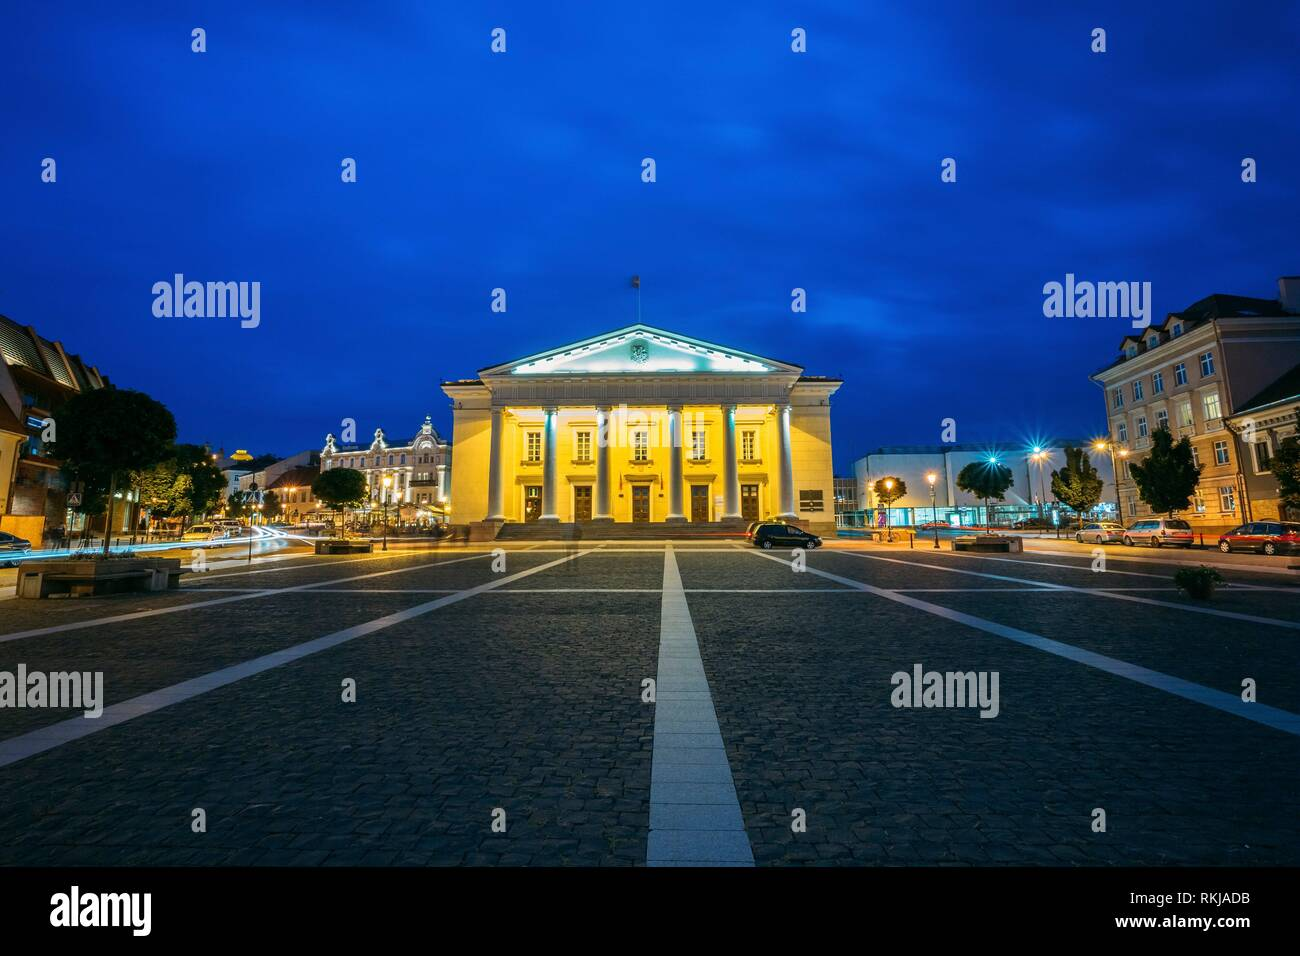 Vilnius, Lithuania. Main Facade Of Town Council In Evening Illumination, Administrative Building With Columns On Didzioji Street In Old Town Under - Stock Image